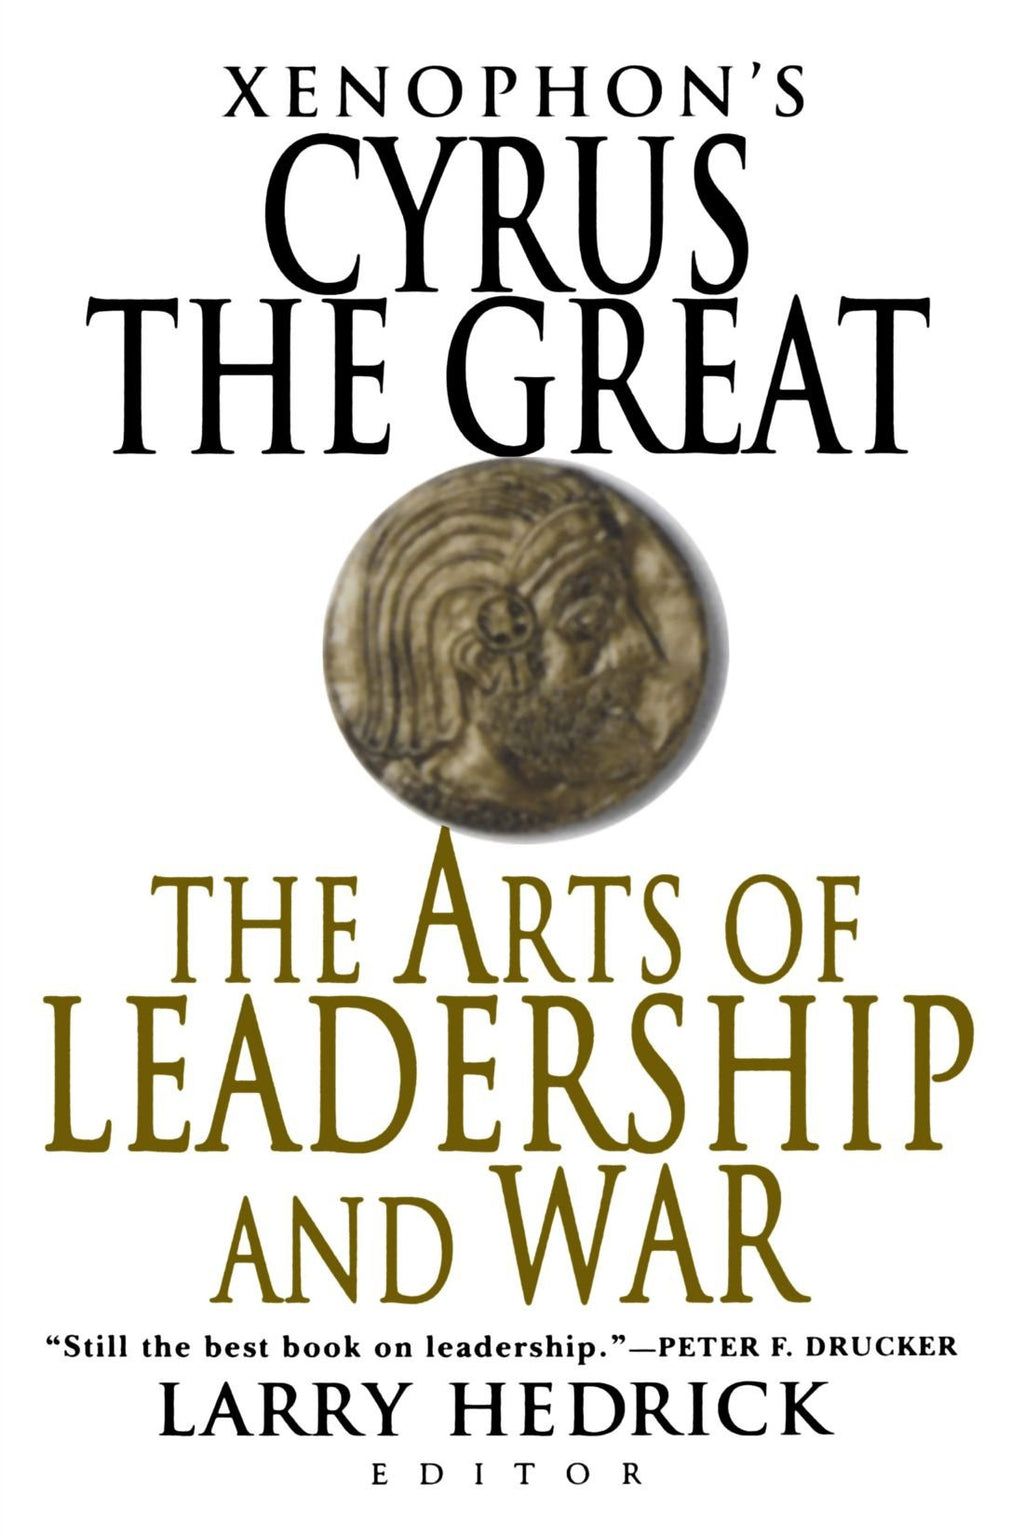 Xenophon's Cyrus the Great: The Arts of Leadership and War by Xenophon Editor: Larry Hedrick